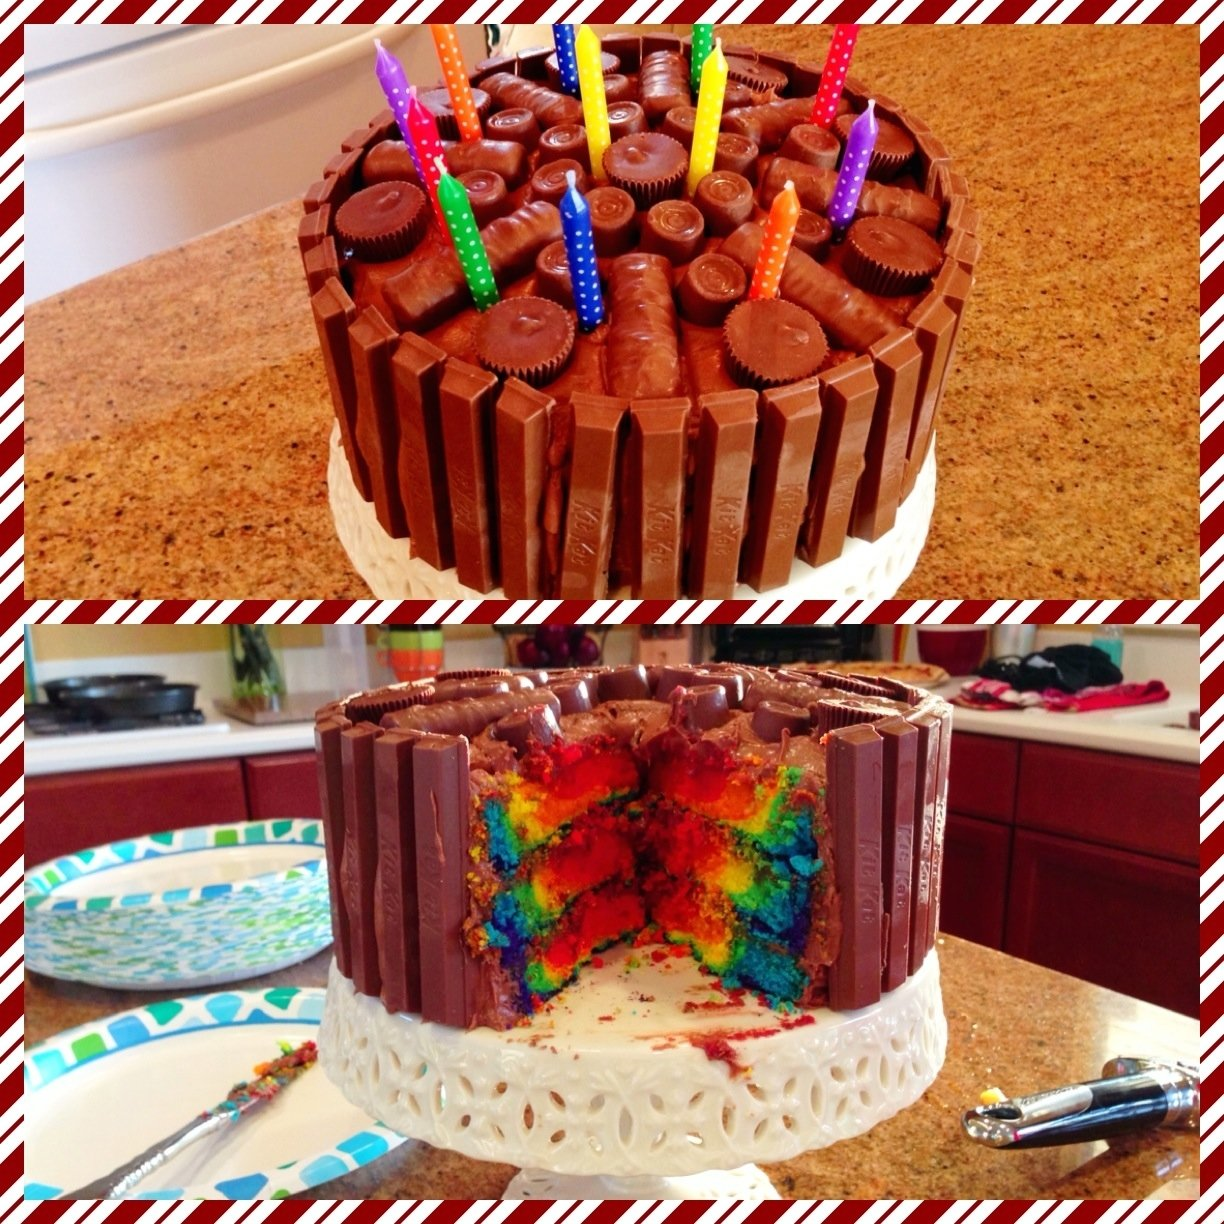 10 Lovely Birthday Party Ideas For A 12 Year Old Boy Cake My